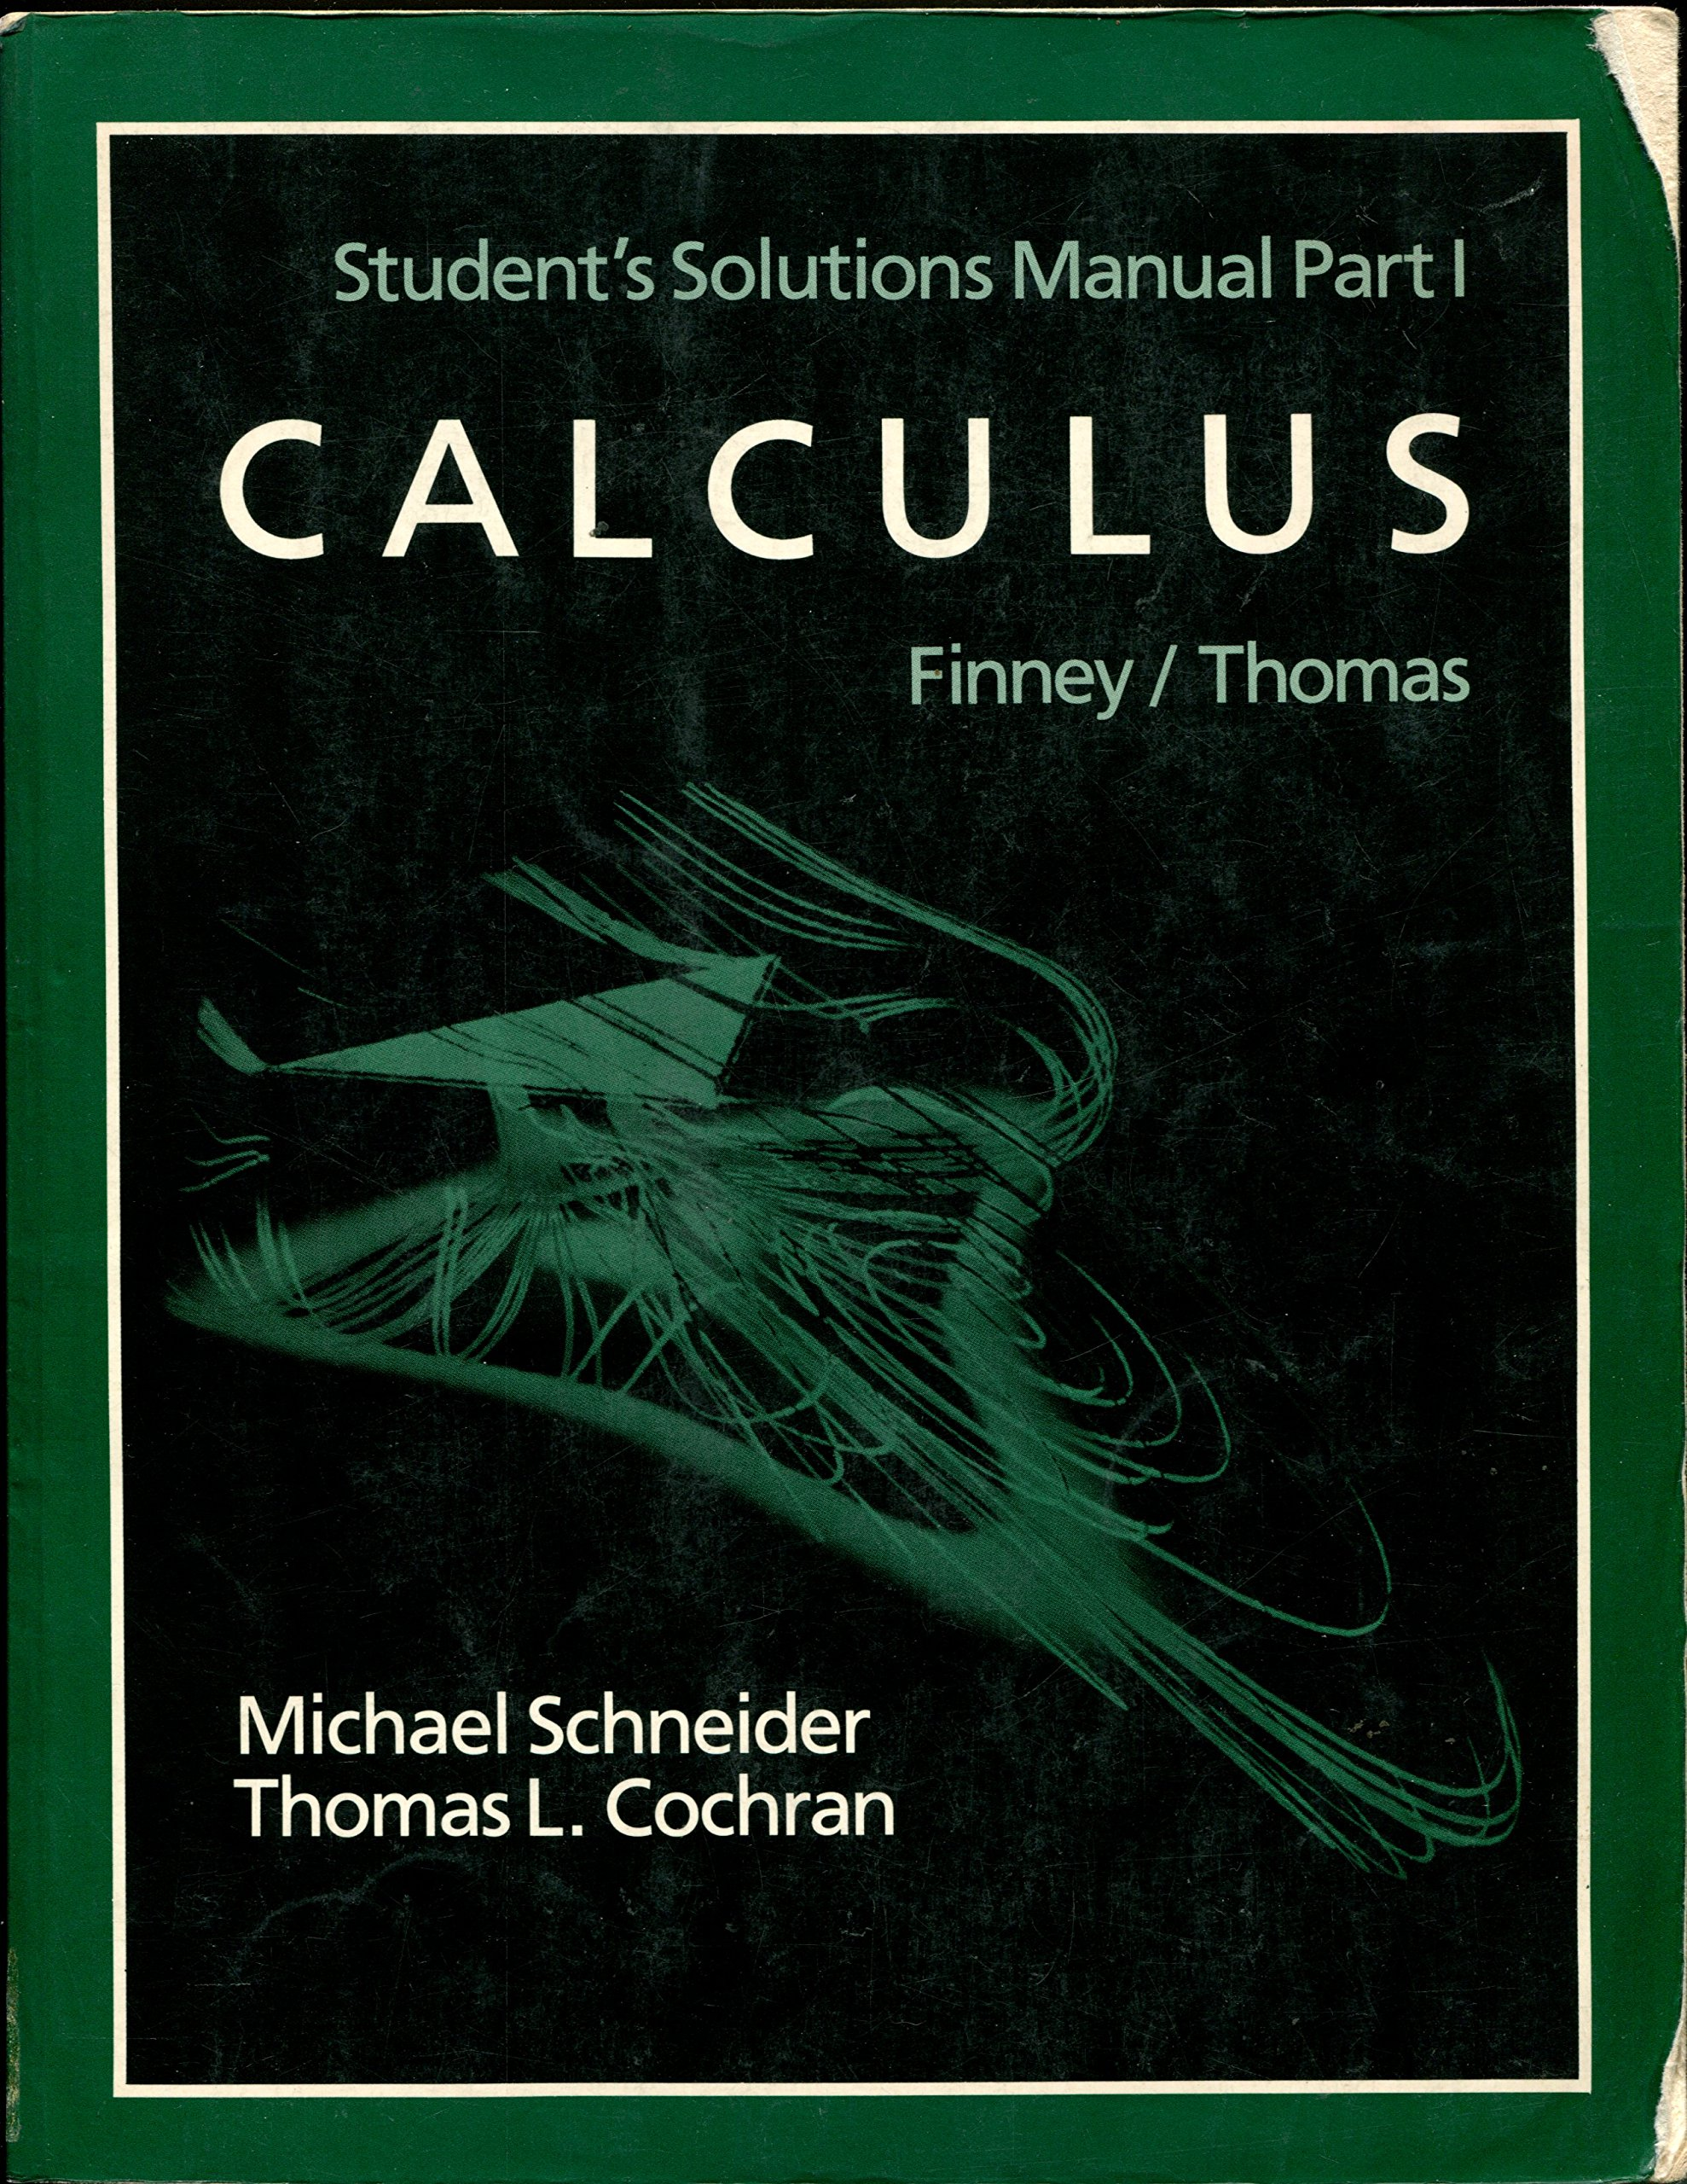 Student's Solutions Manual for Calculus by Finney & Thomas (Pt. 1): Michael  B. Schneider, Thomas L. Cochran: 9780201193459: Amazon.com: Books